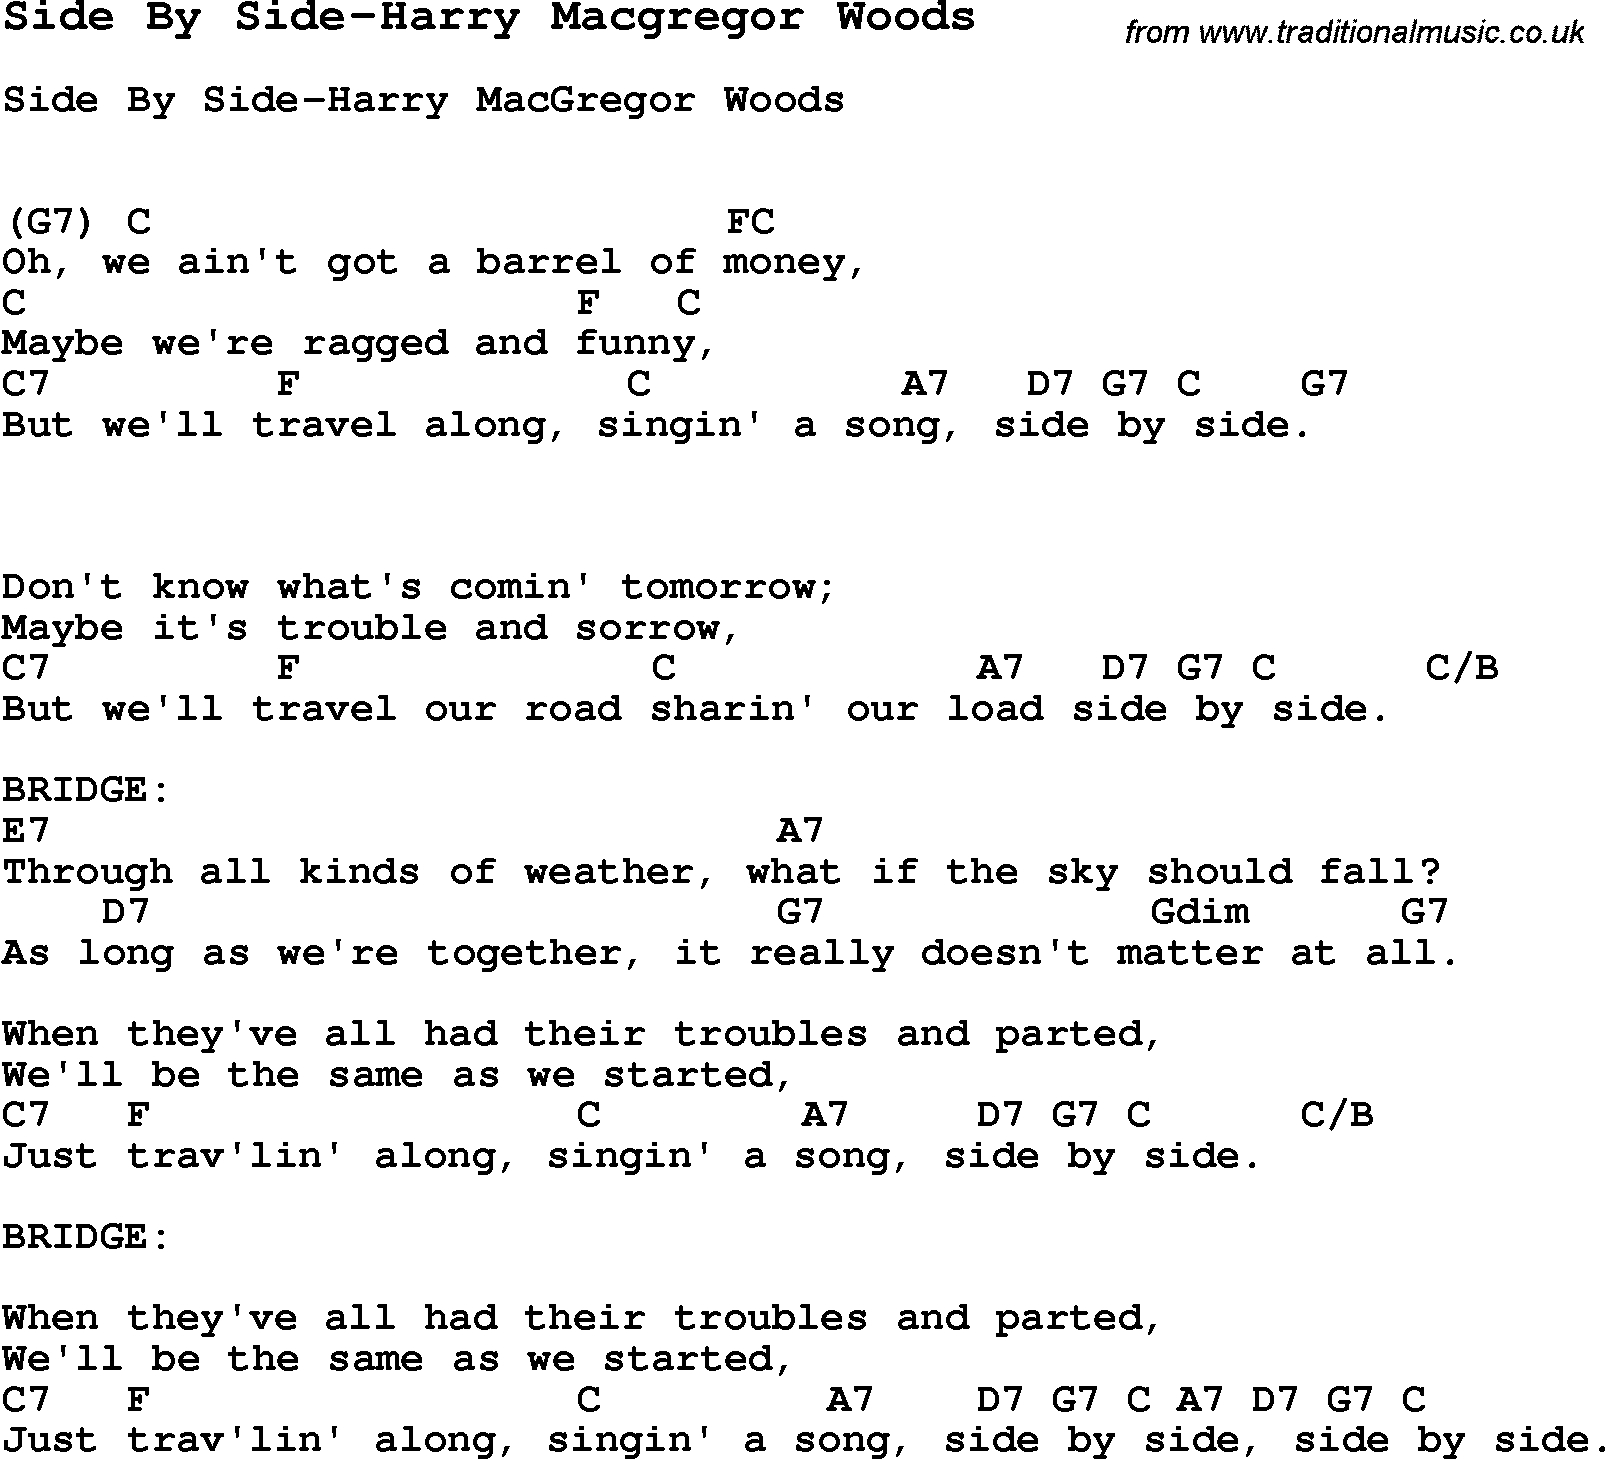 Side To Side Chords Summer Camp Song Side Side Harry Macgregor Woods With Lyrics